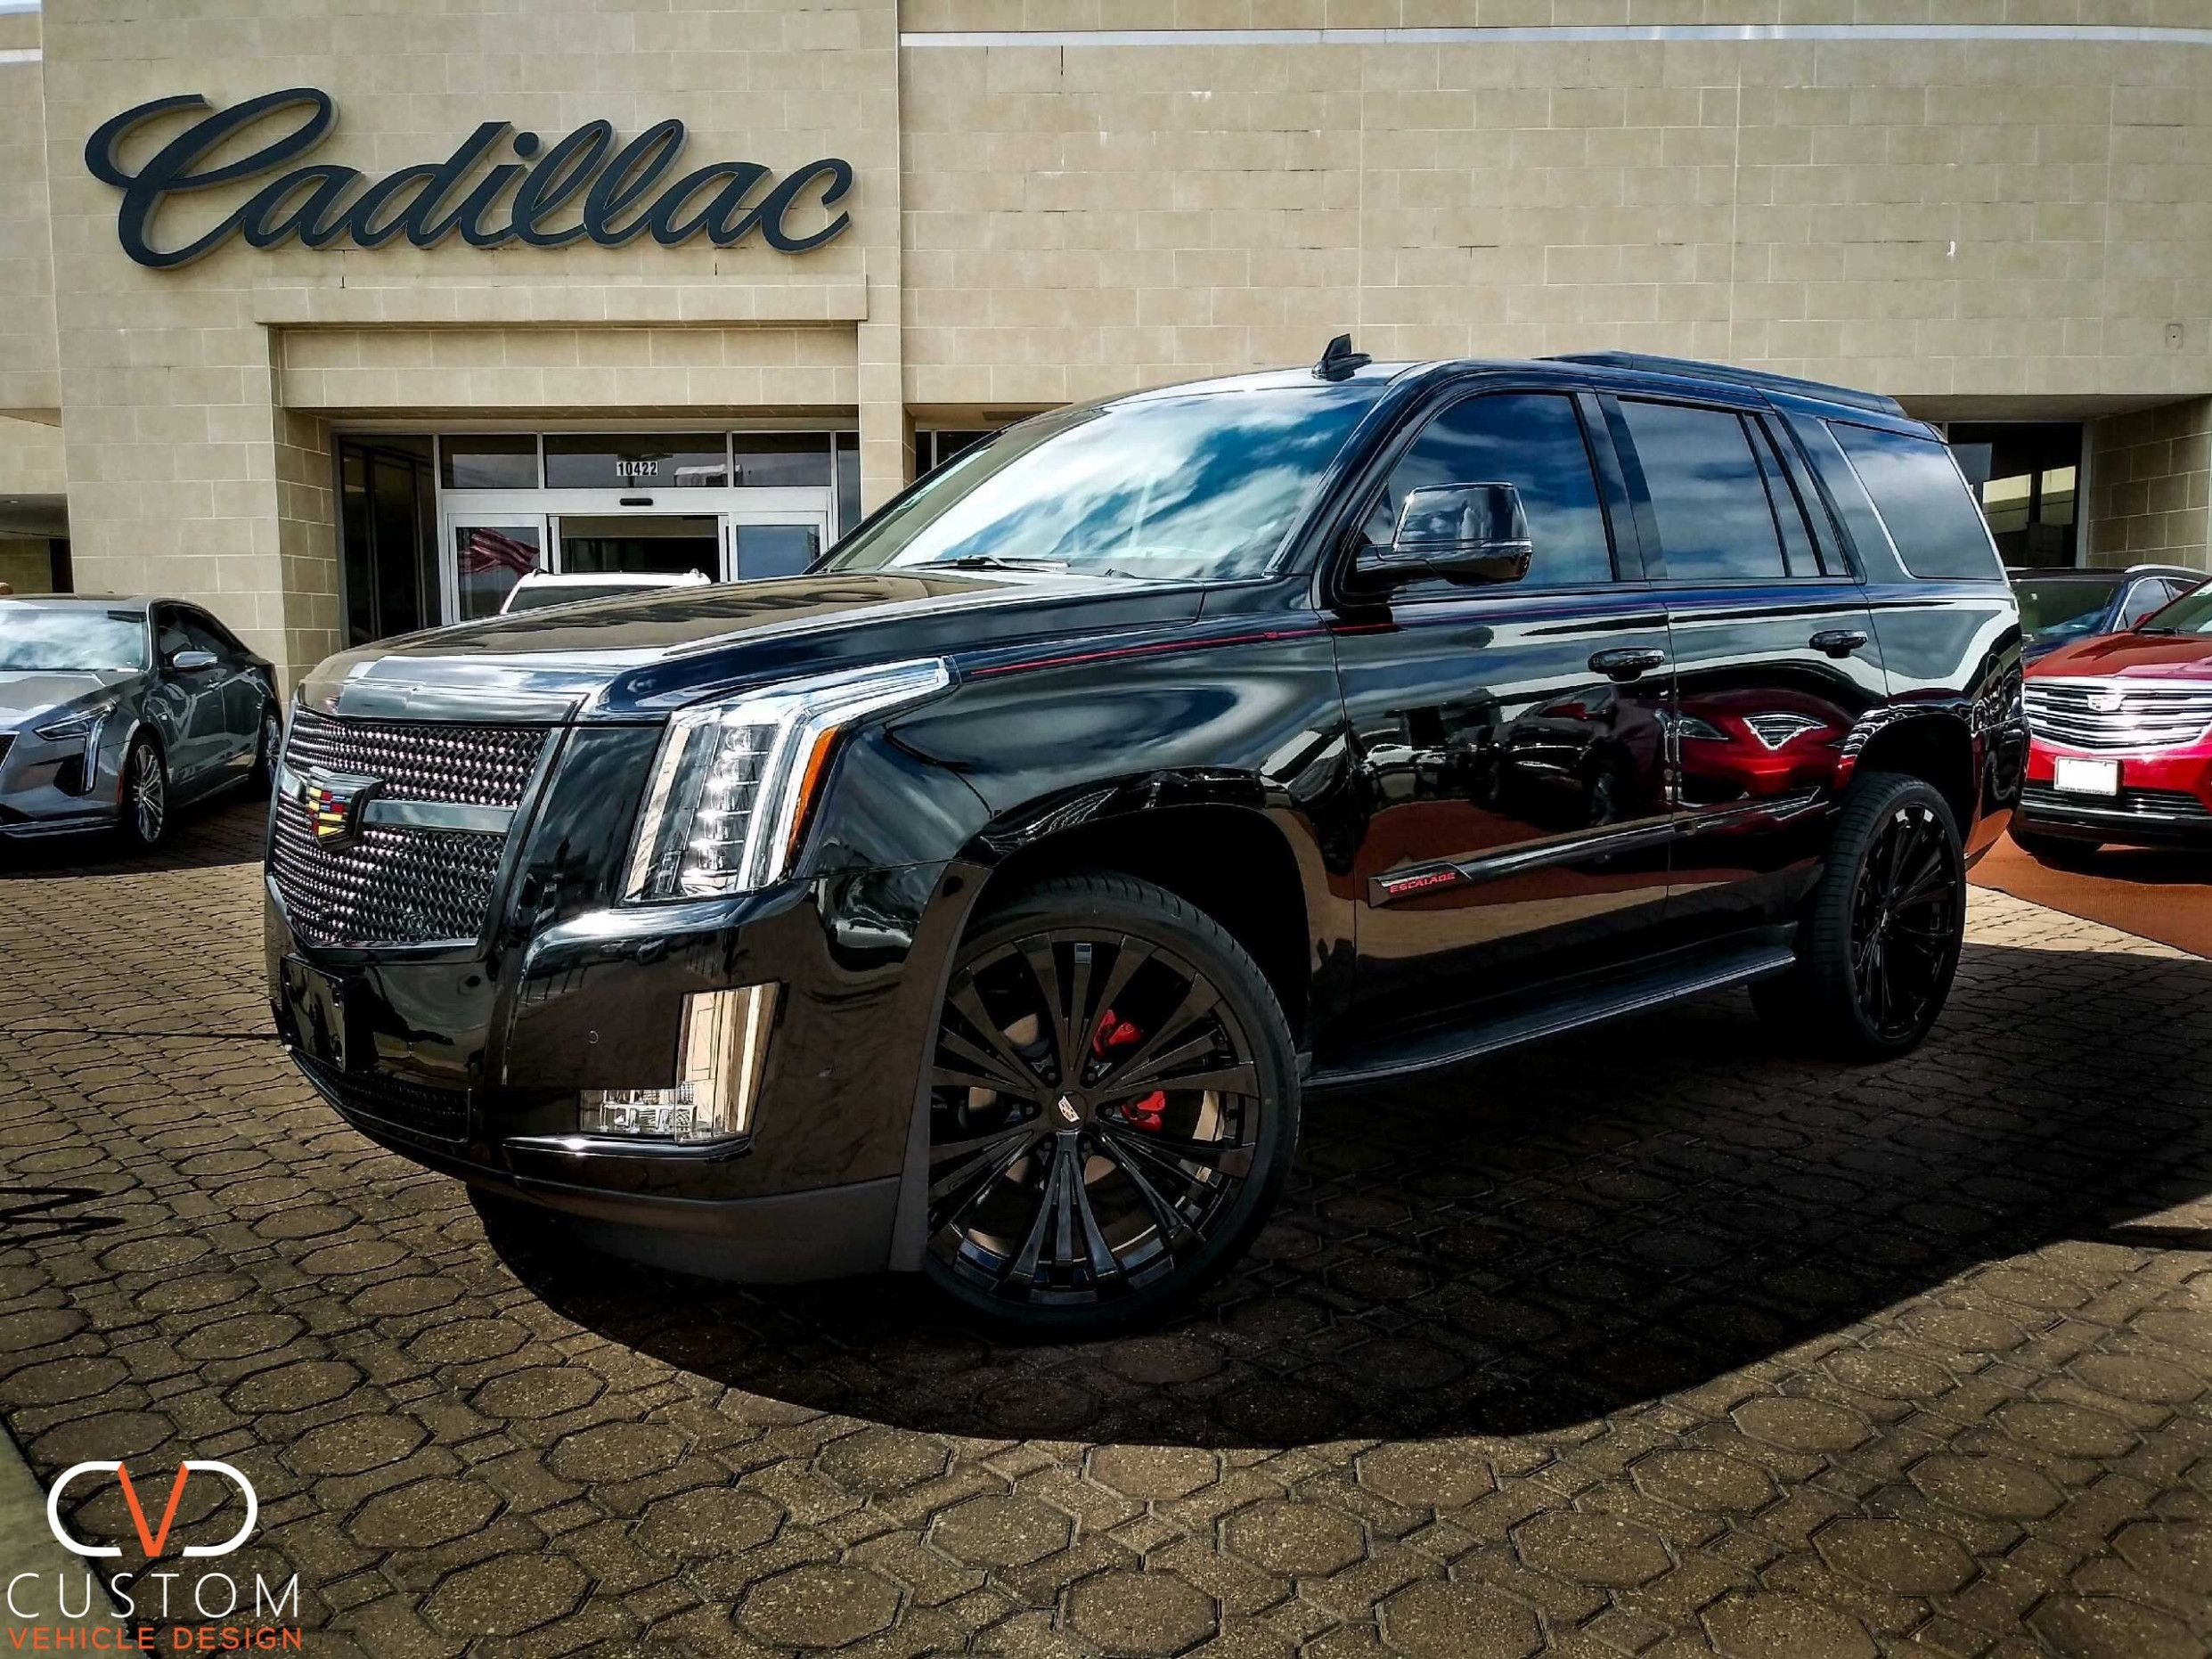 Pin on Pinterest - 2020 cadillac escalade wheels